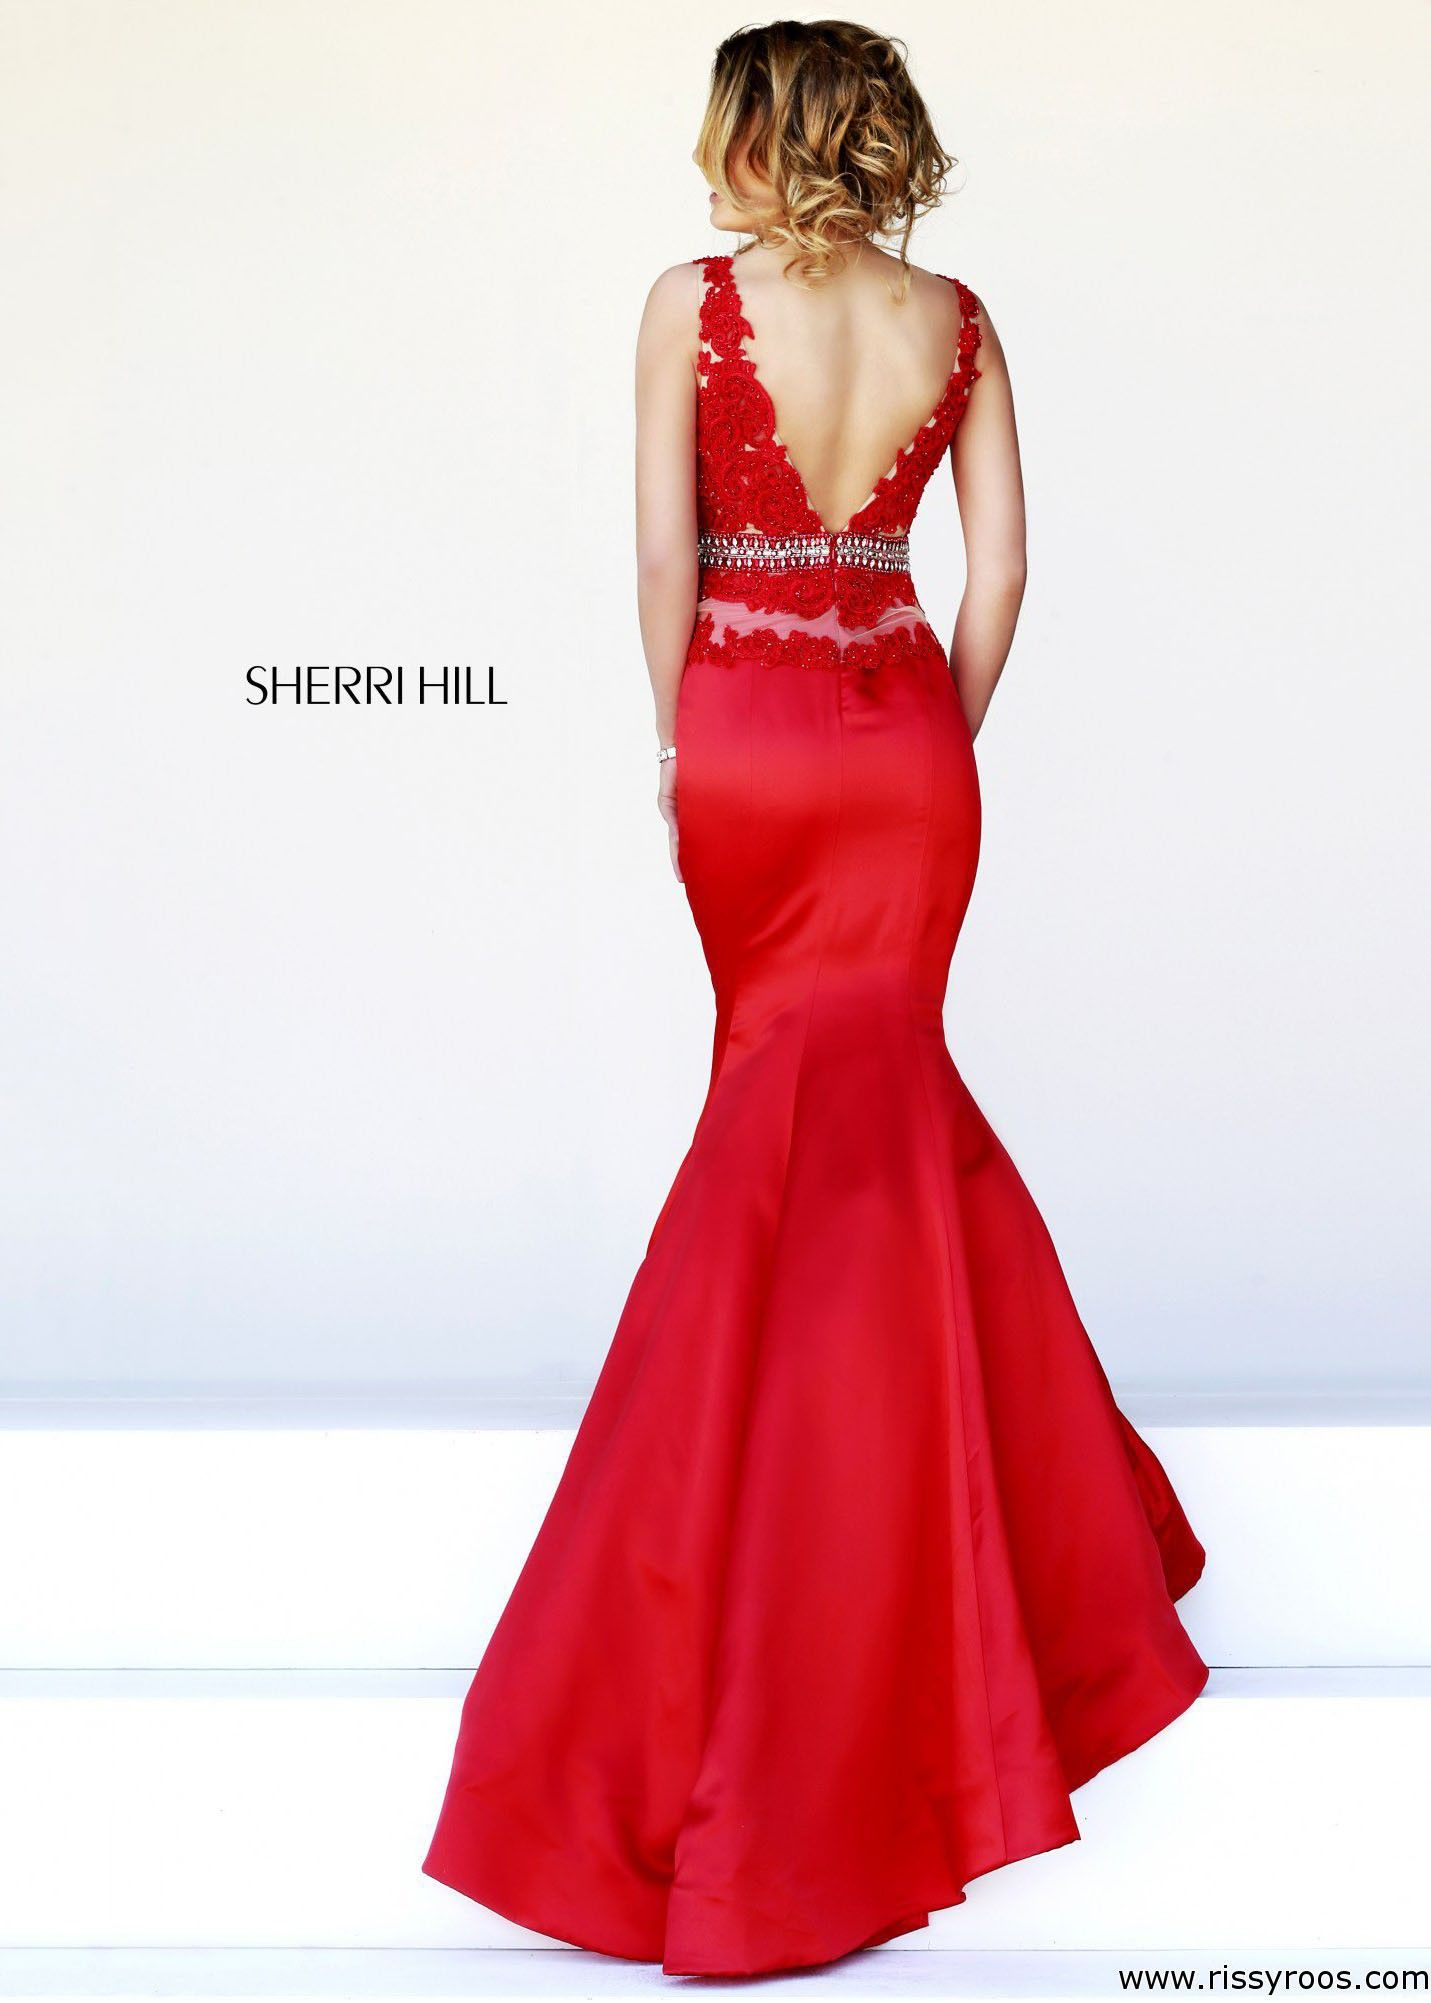 Sherri hill sexy mermaid gown crushingonrissyroos rissyroos